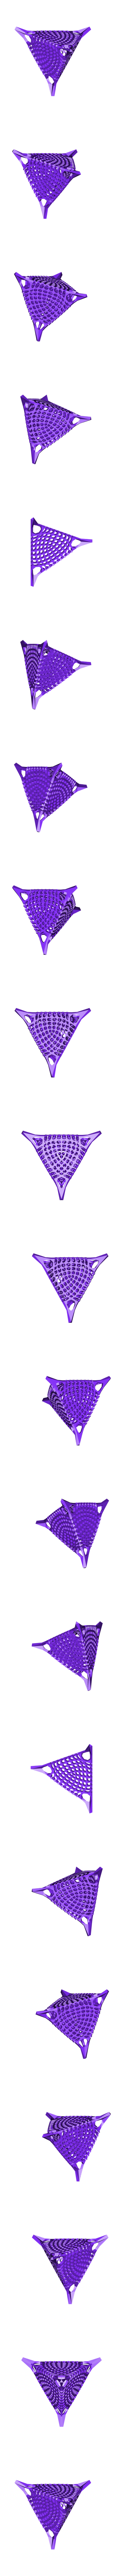 TryAmid.stl Download free STL file Pyramid • 3D printer design, phipo333